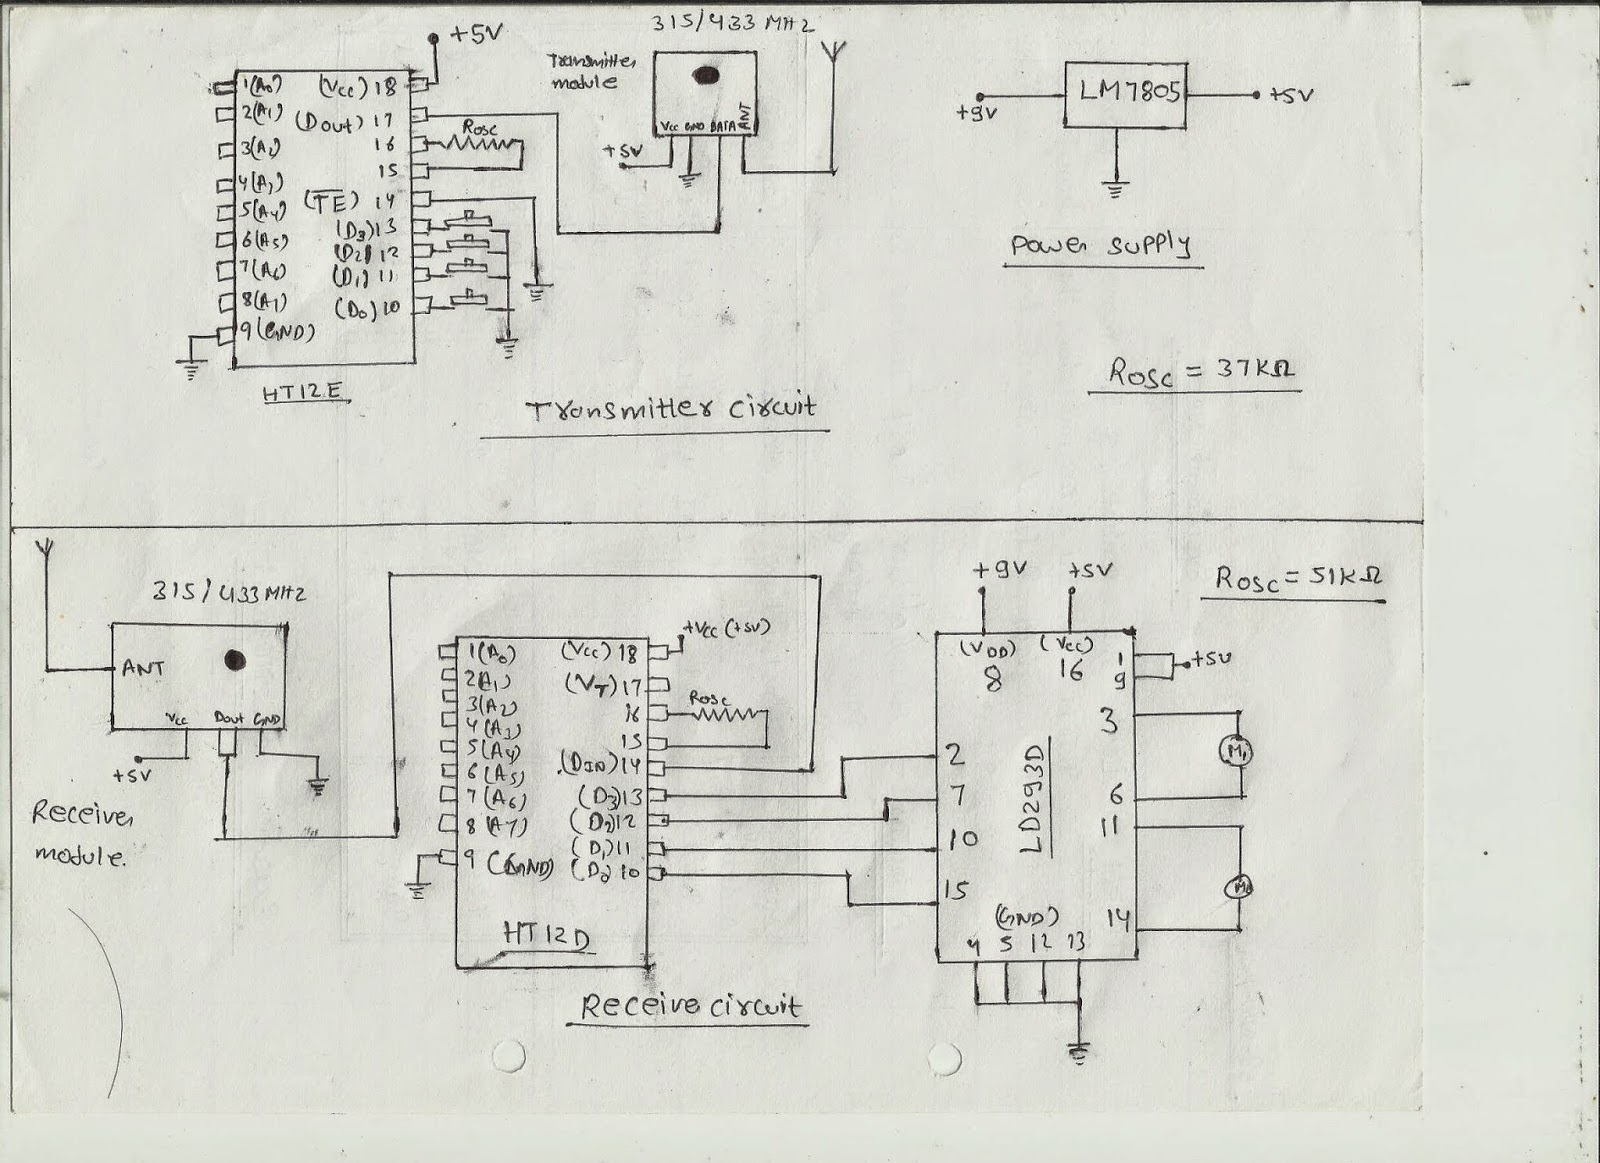 Car Stereo Circuit Board Diagram Circuit And Schematics